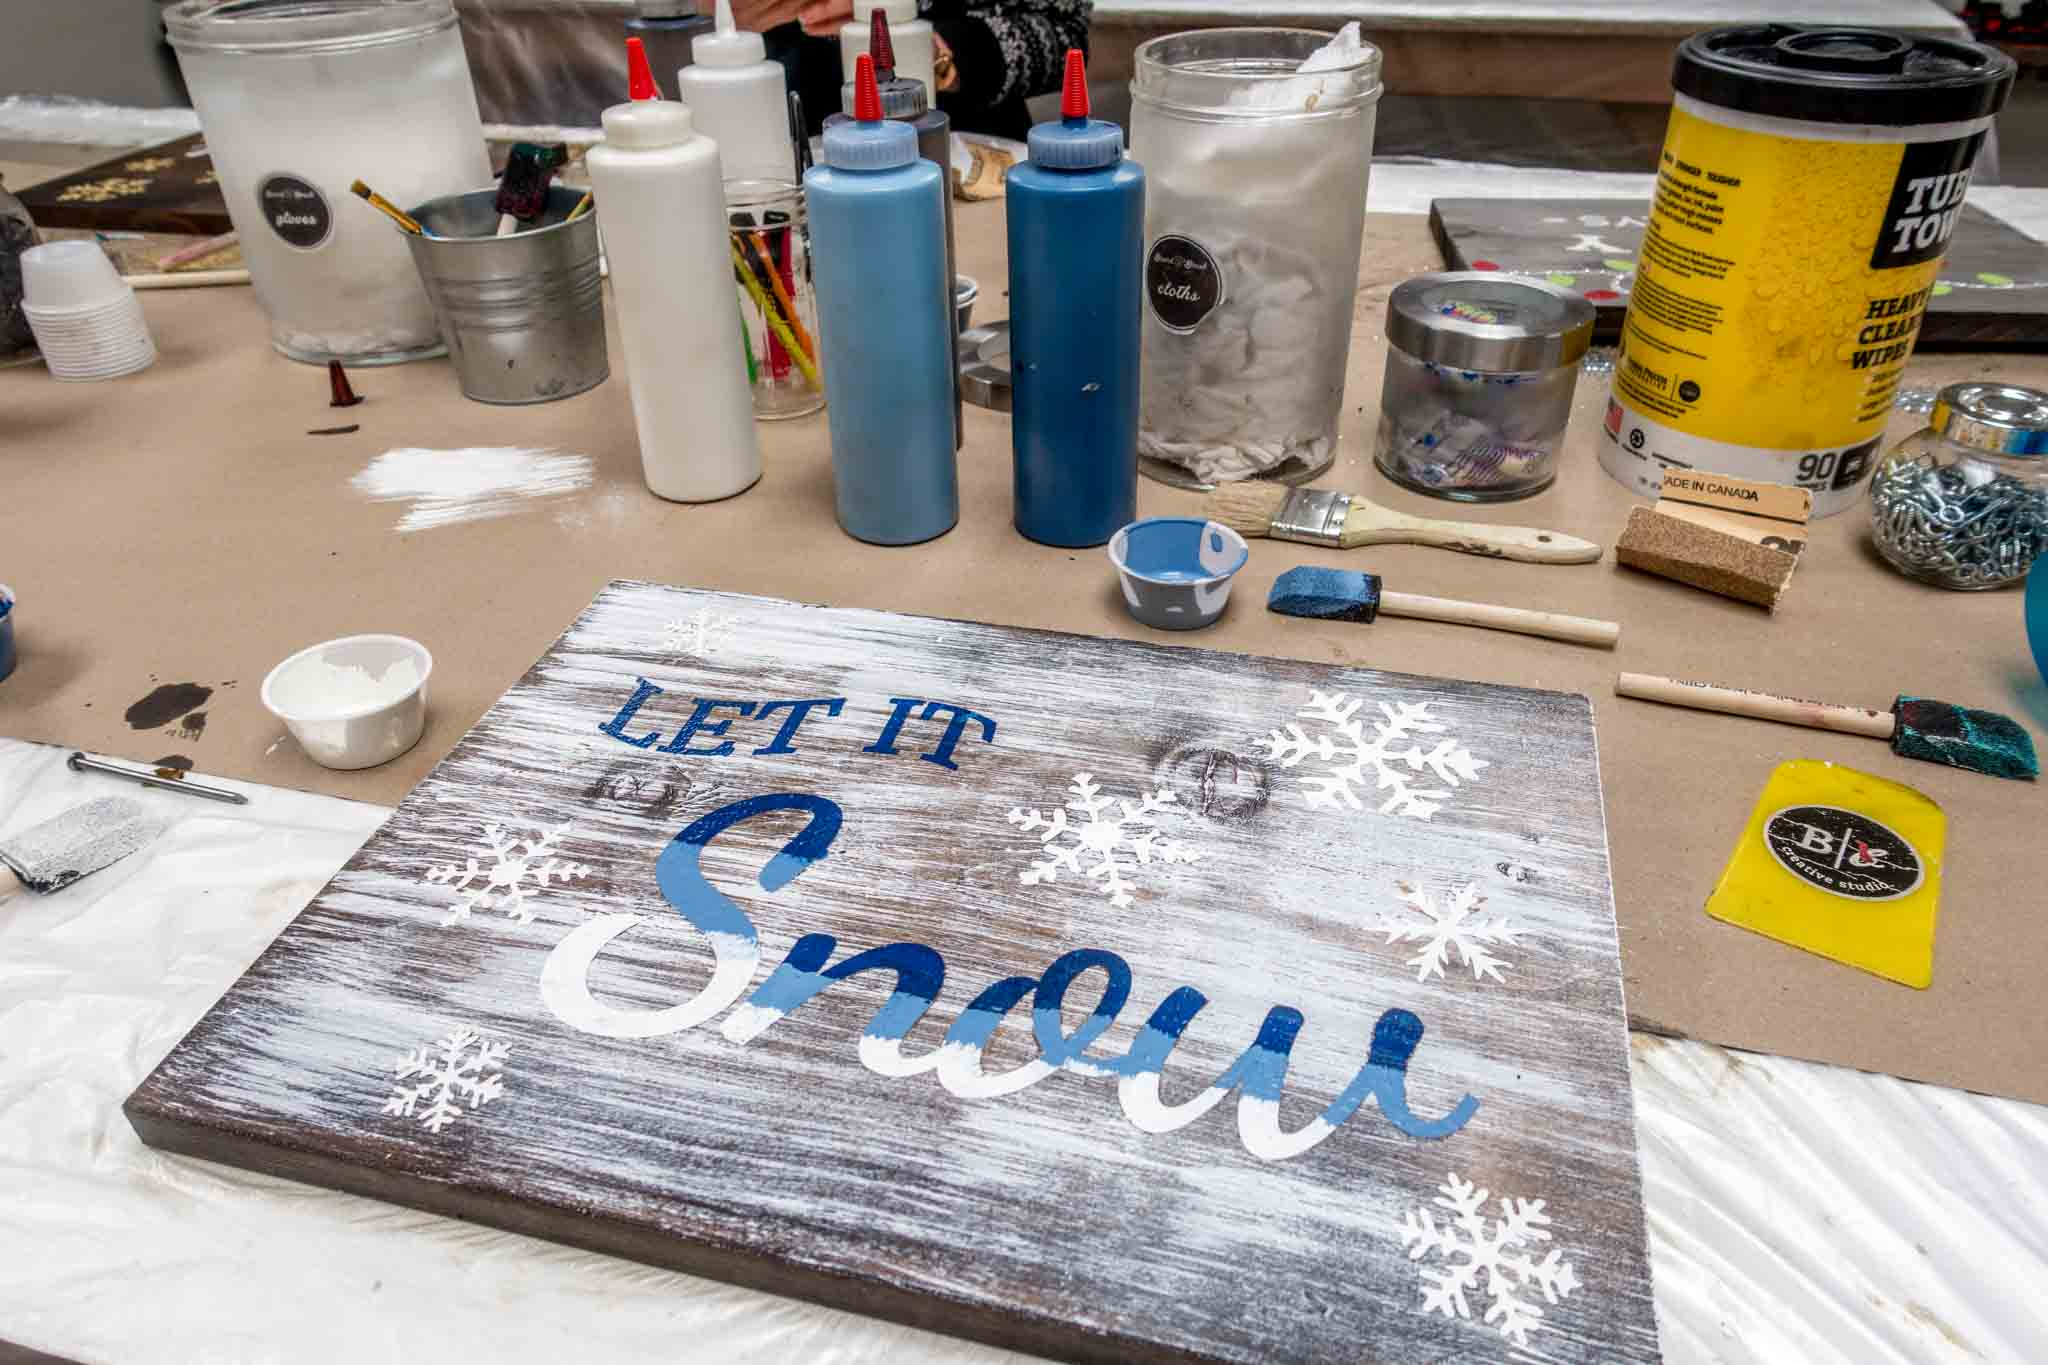 Painting supplies and painted wooden sign